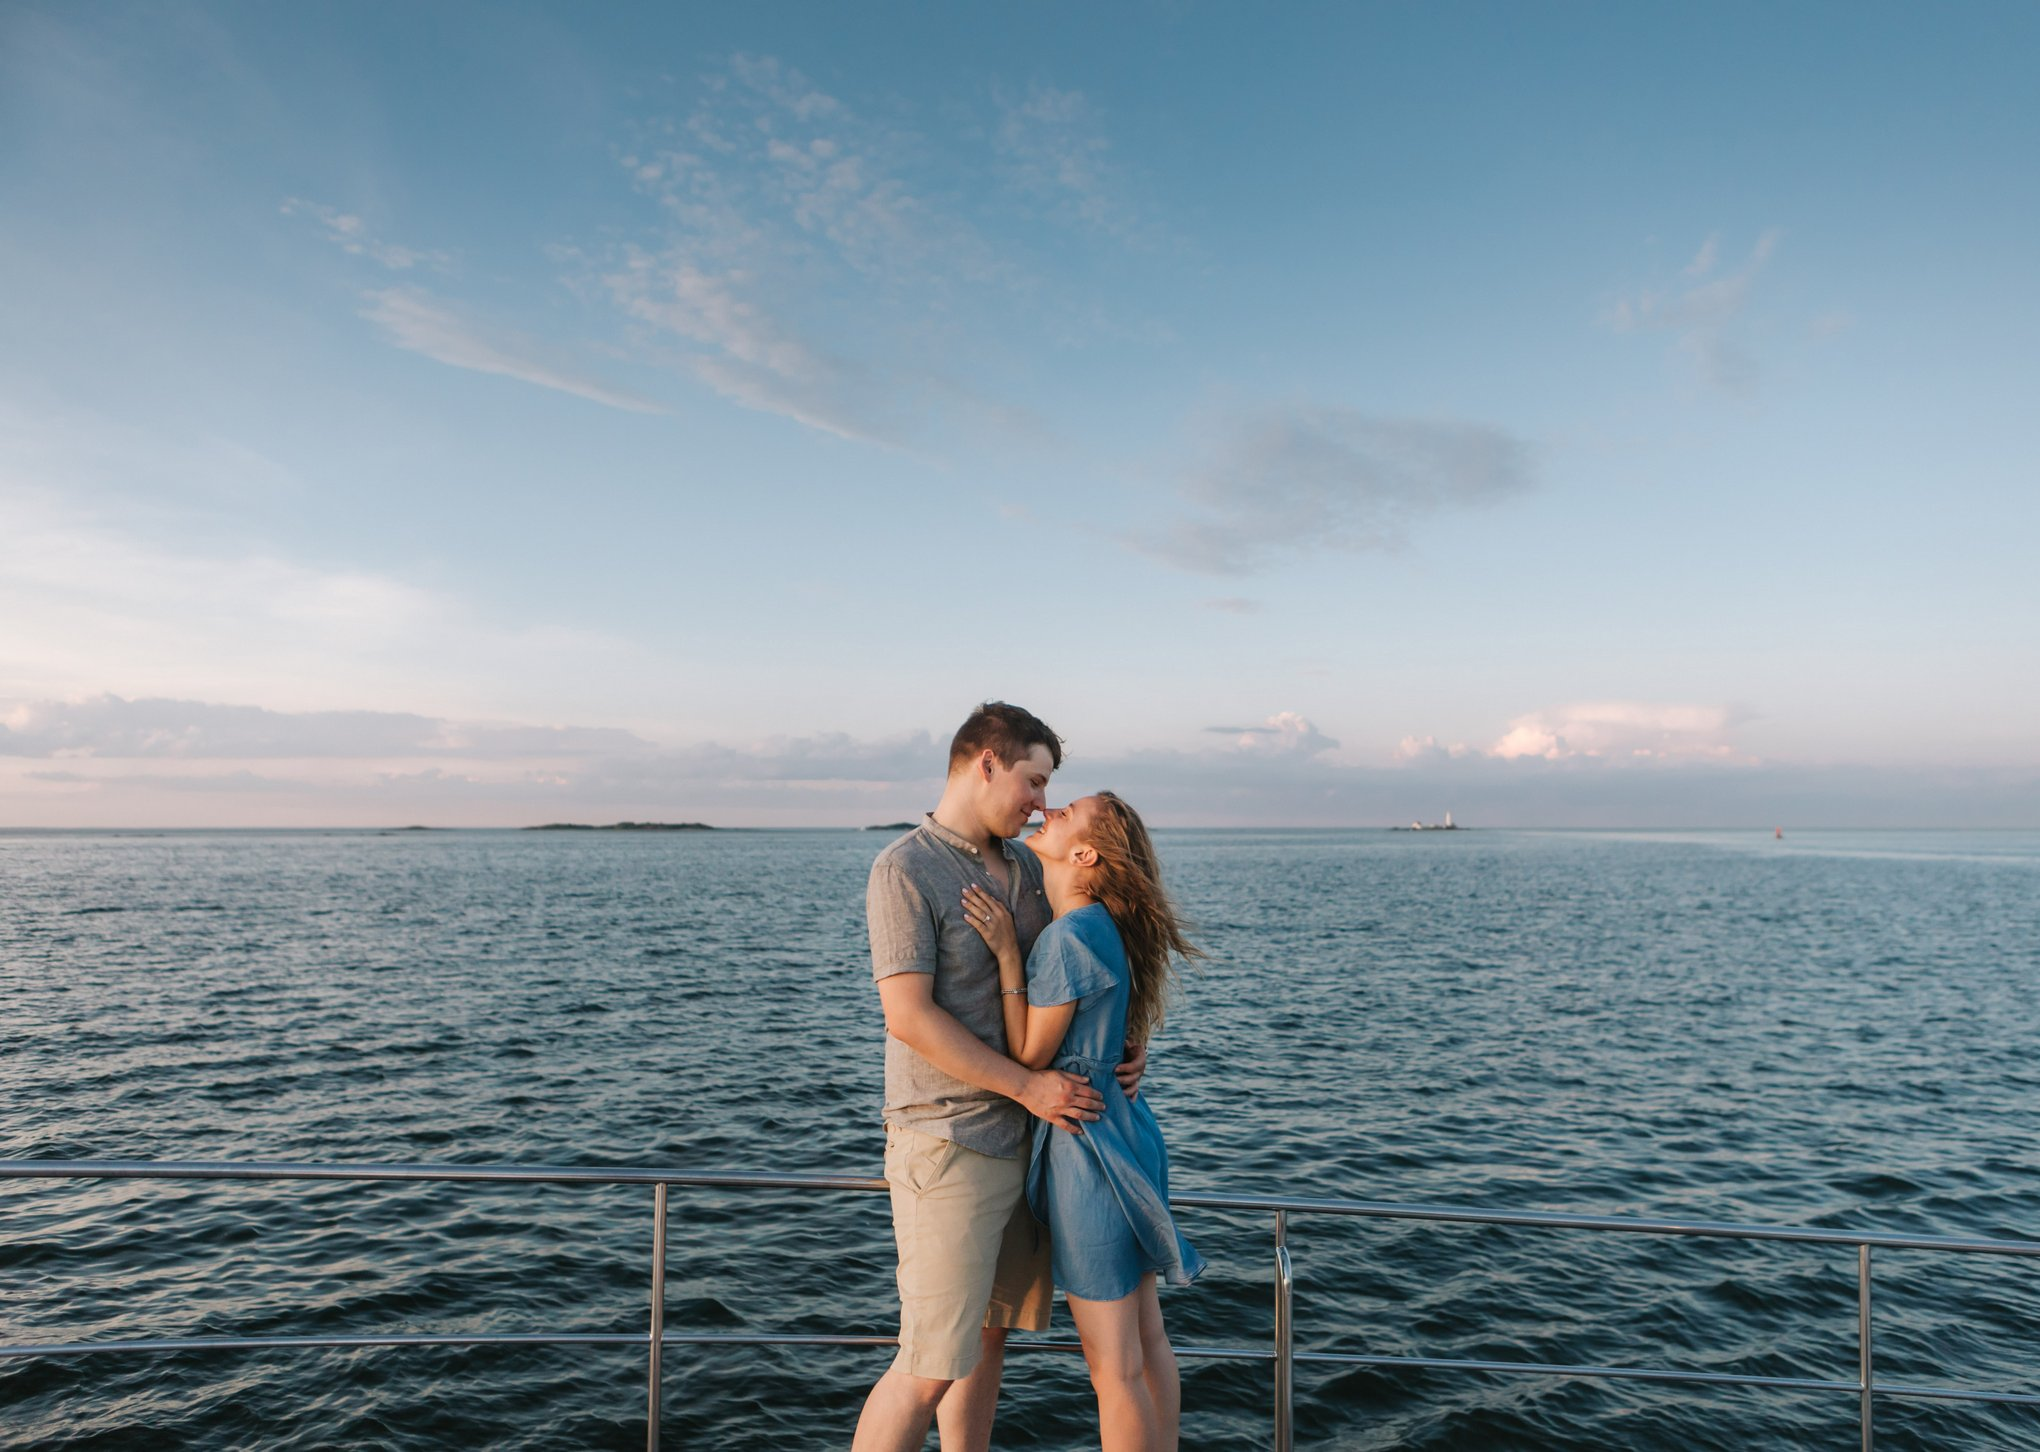 Yacht-Proposal-Boat-Boston-Harbor-Engagement-Beach-Lena-Mirisola-15.JPG